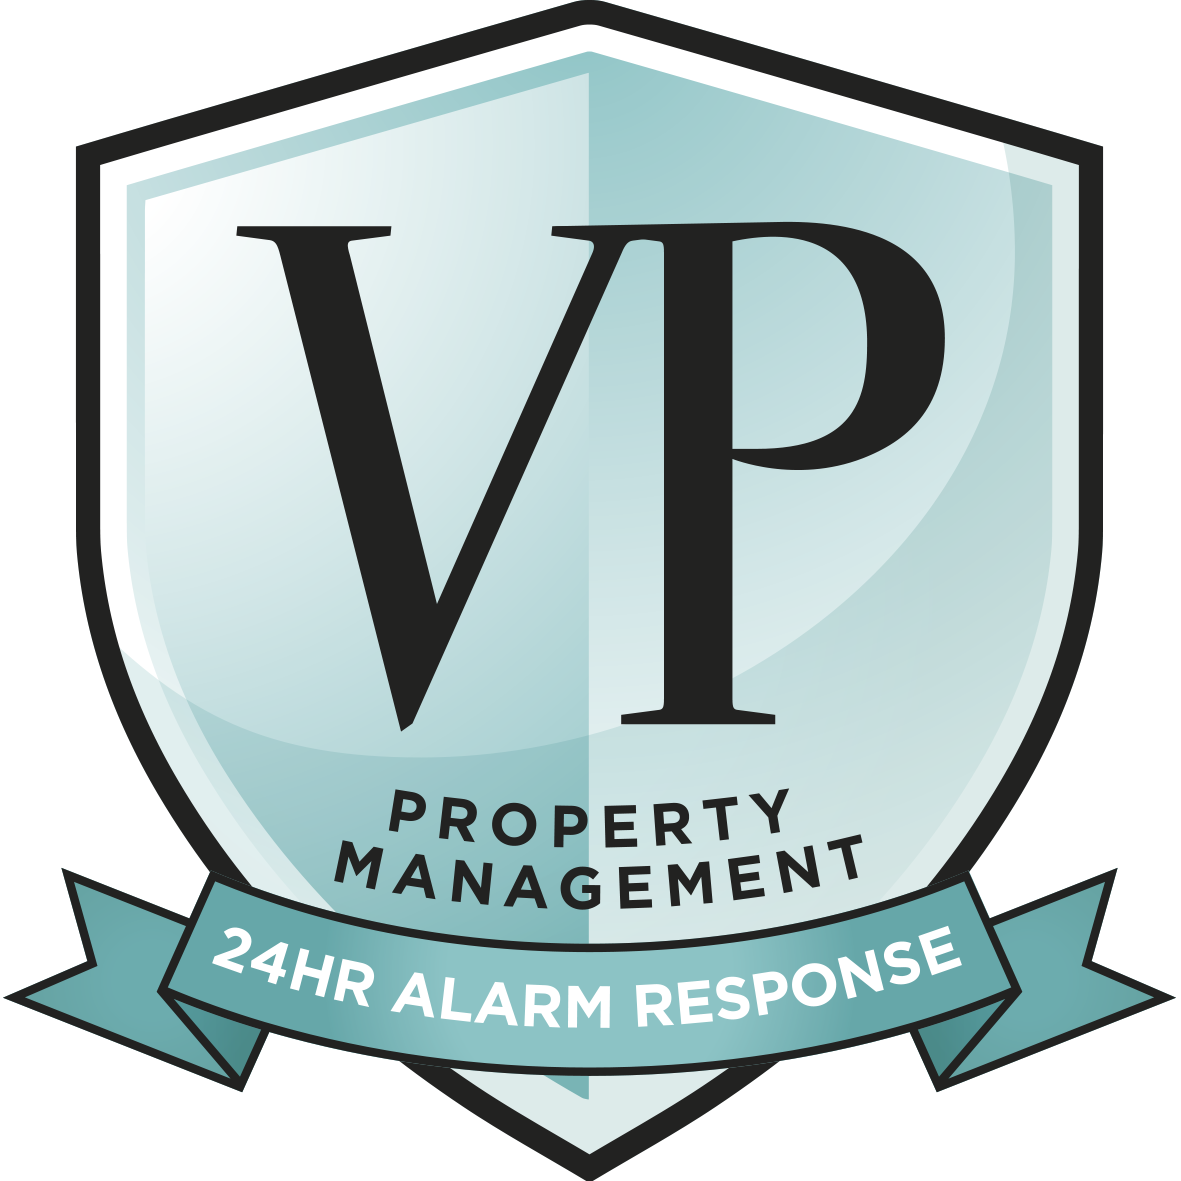 VP Property Management